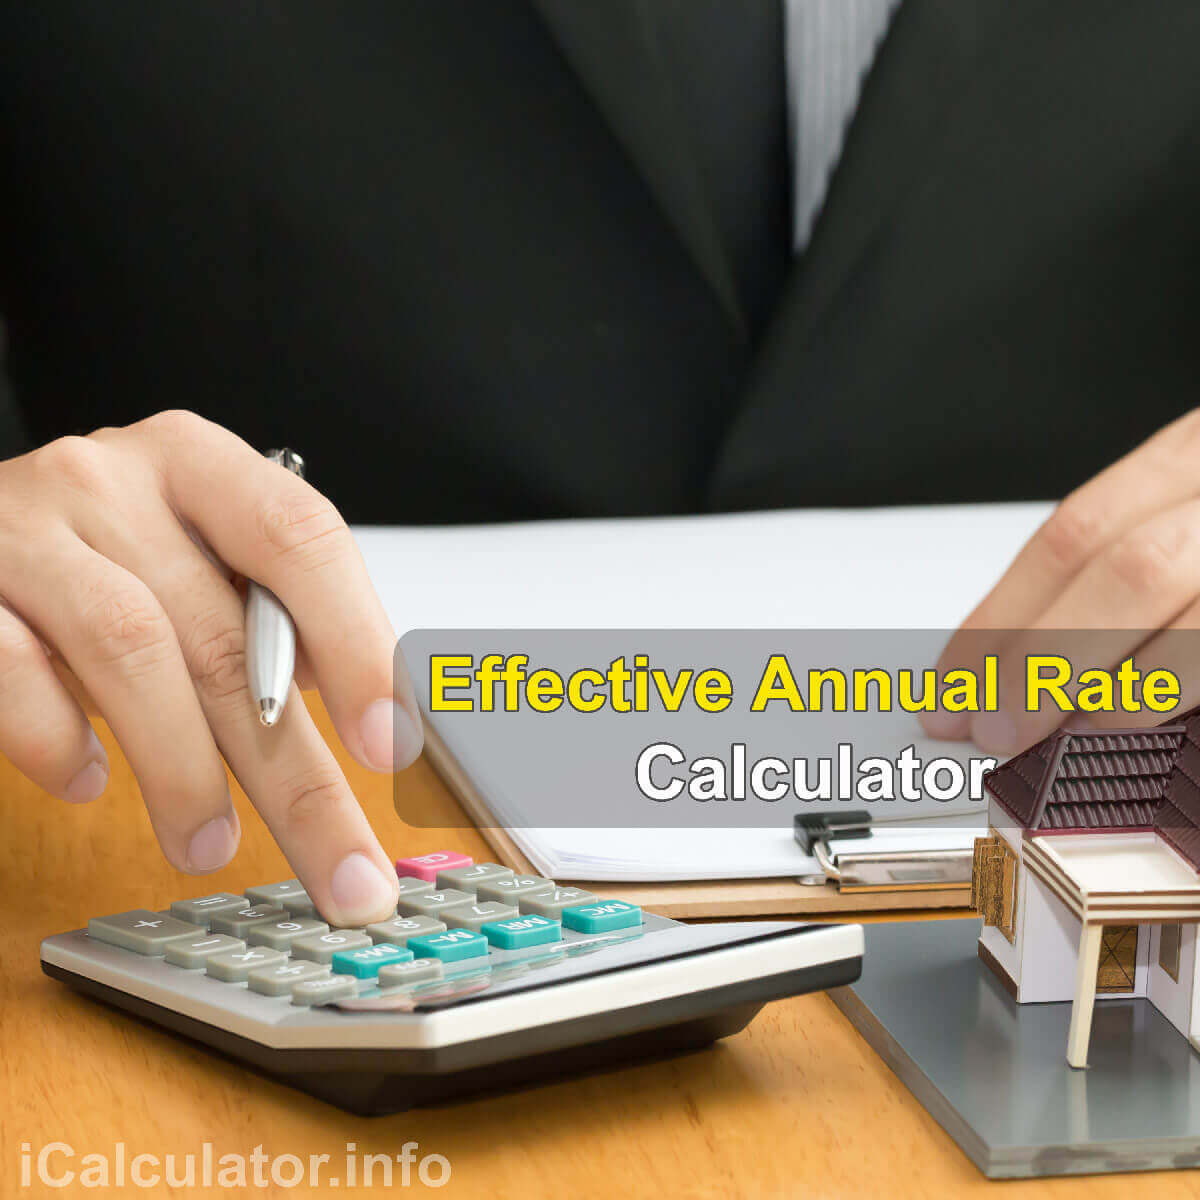 Effective Annual Rate Calculator. This image shows a man learning how to calculate the effective annual rate using a calculator and notepad. By useing the effective annual rate formula, the Effective Annual Rate Calculator provides a true calculation of the interest rate on an investment and/or personal and home loans.